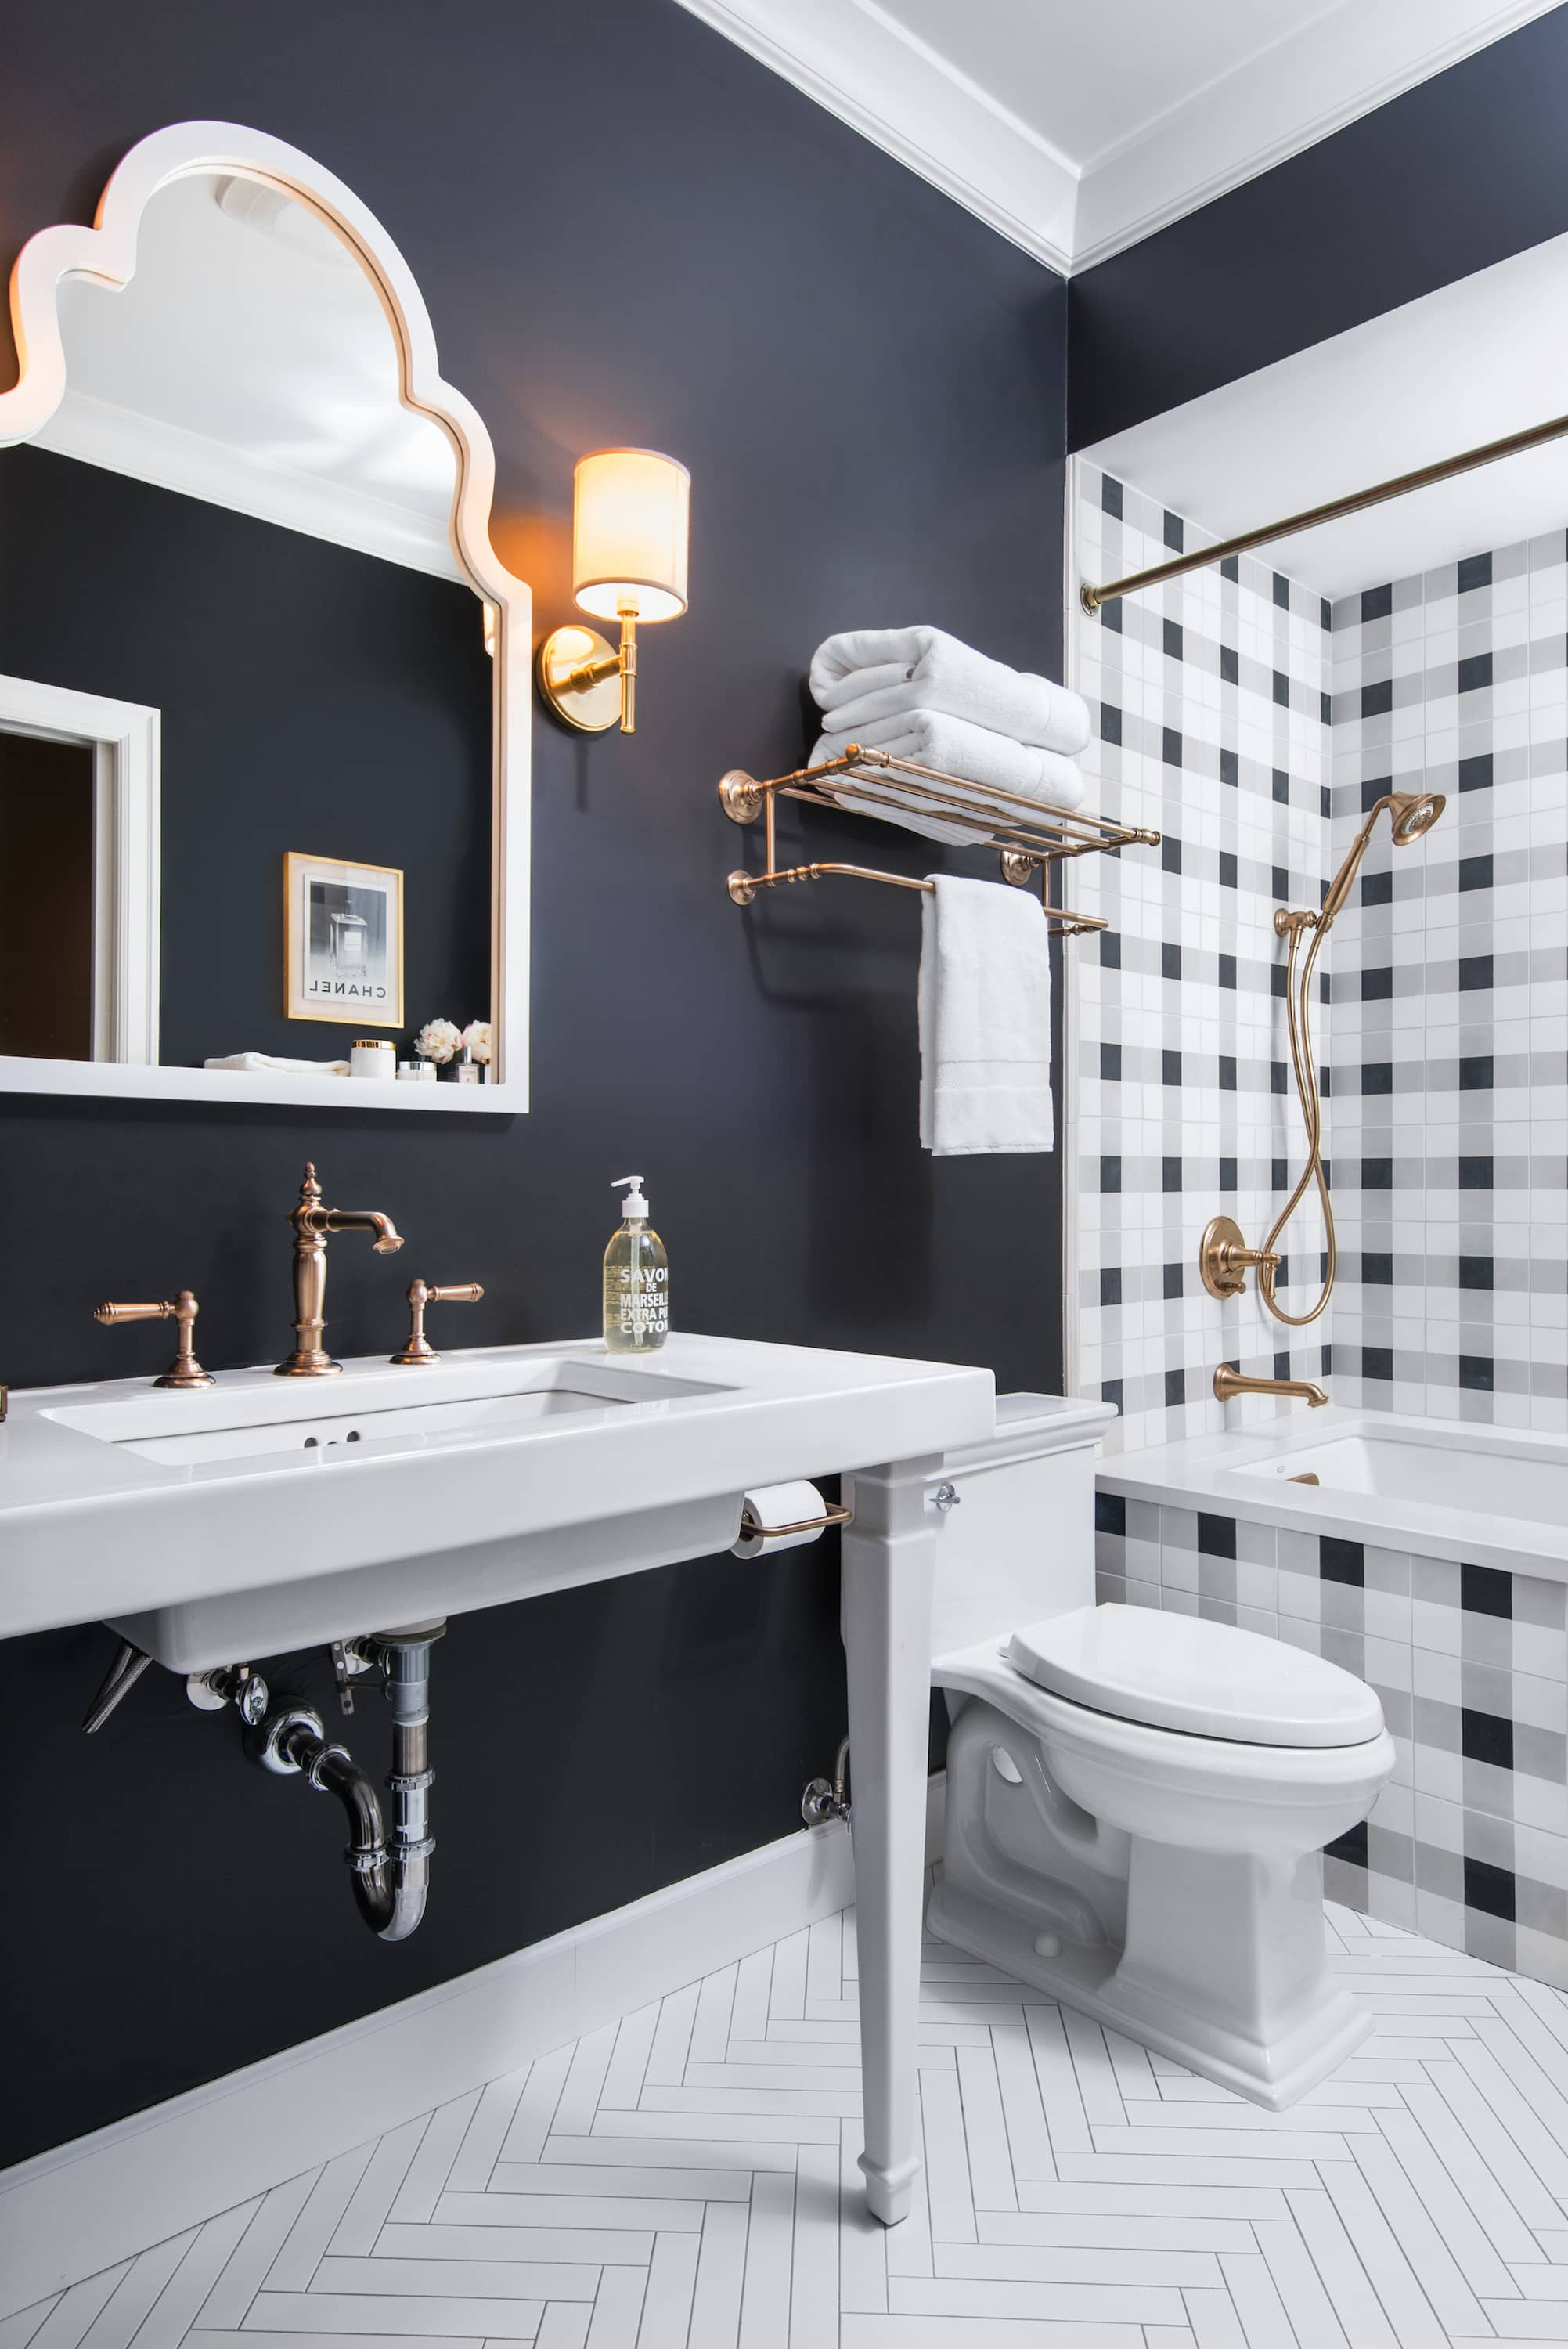 6 Bathrooms With Gorgeous Herringbone Tile Floors Apartment Therapy